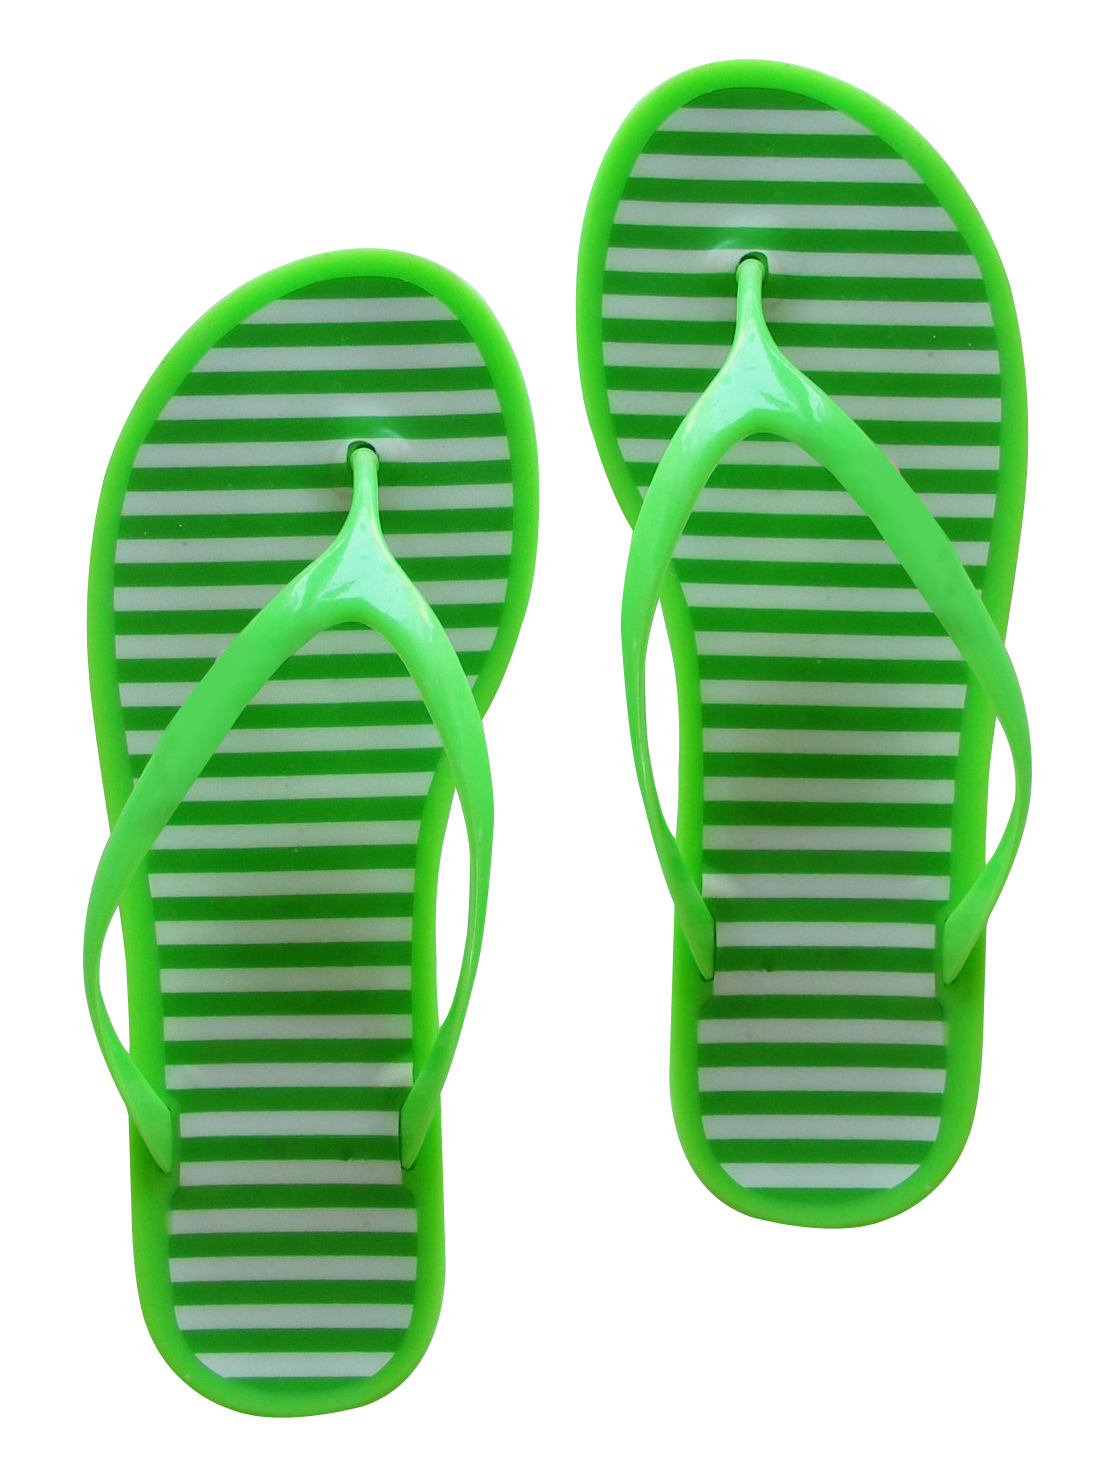 PNG Slippers-PlusPNG.com-1099 - PNG Slippers